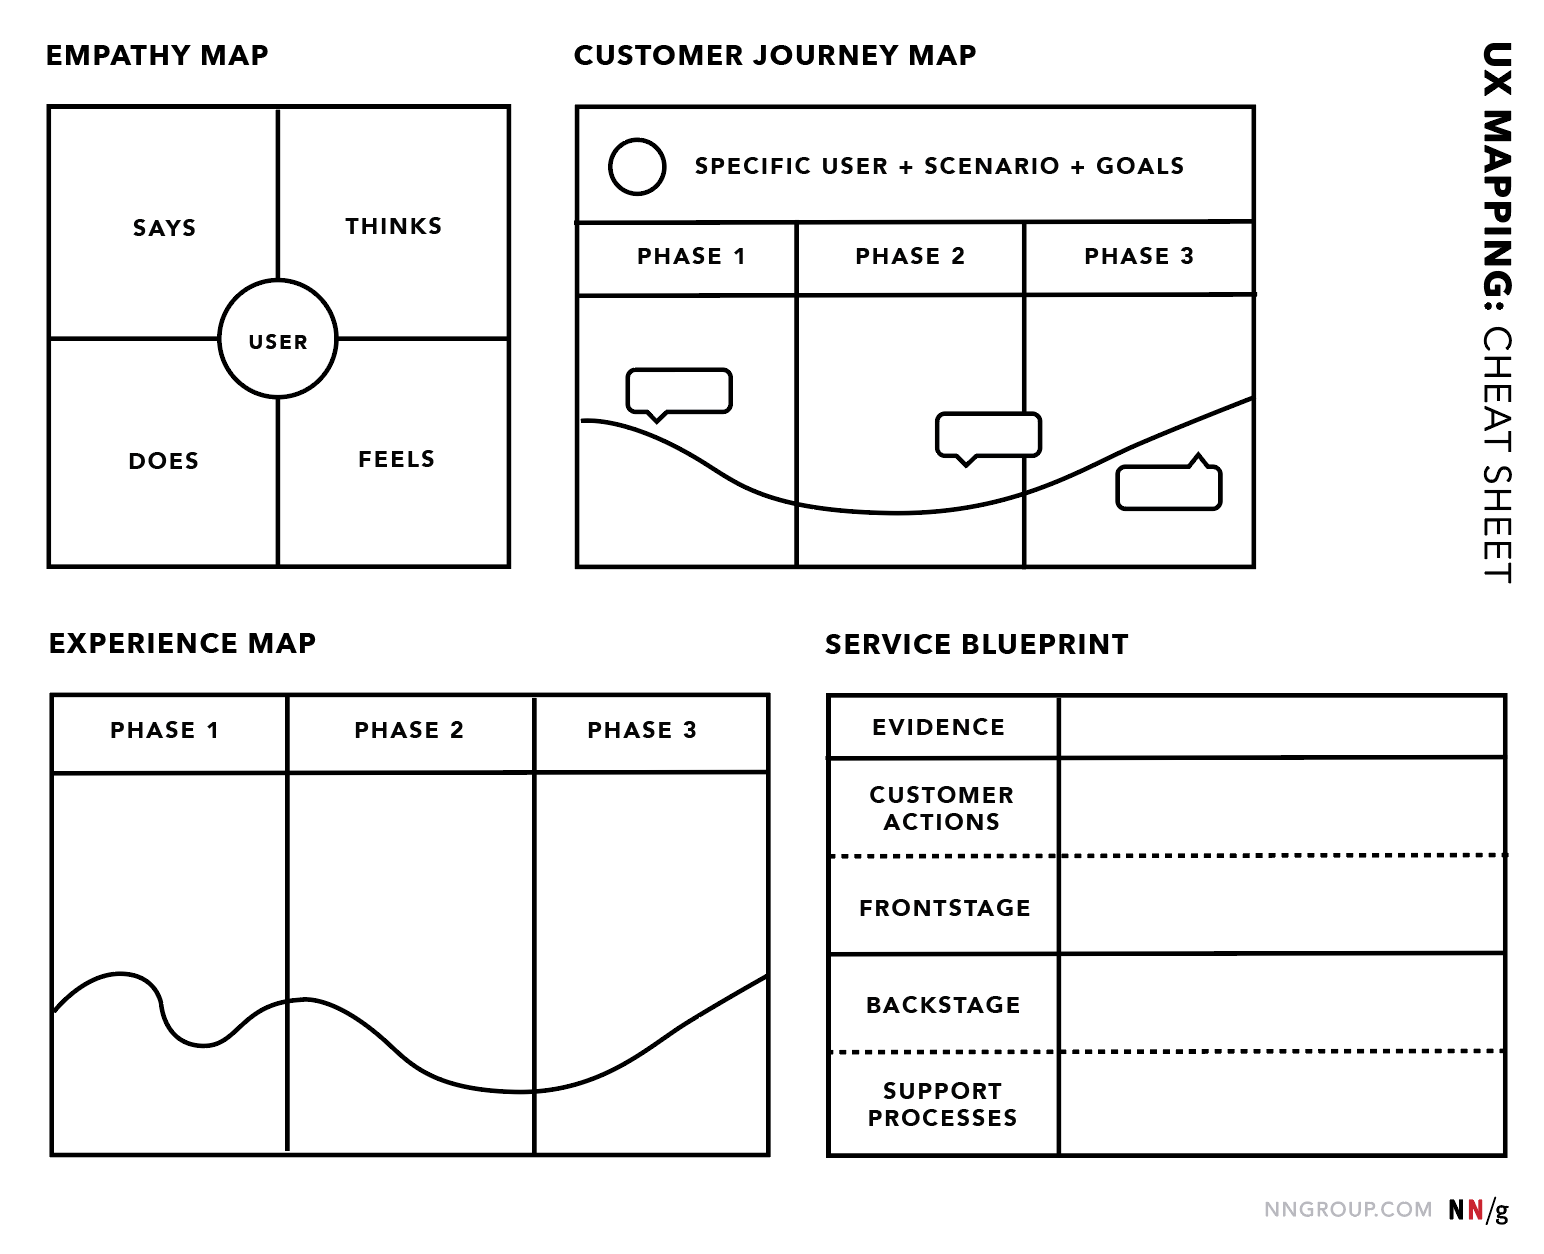 UX Mapping Cheat Sheet: Empathy Mapping, Customer Journey Mapping, Experience Mapping and Service Blueprinting